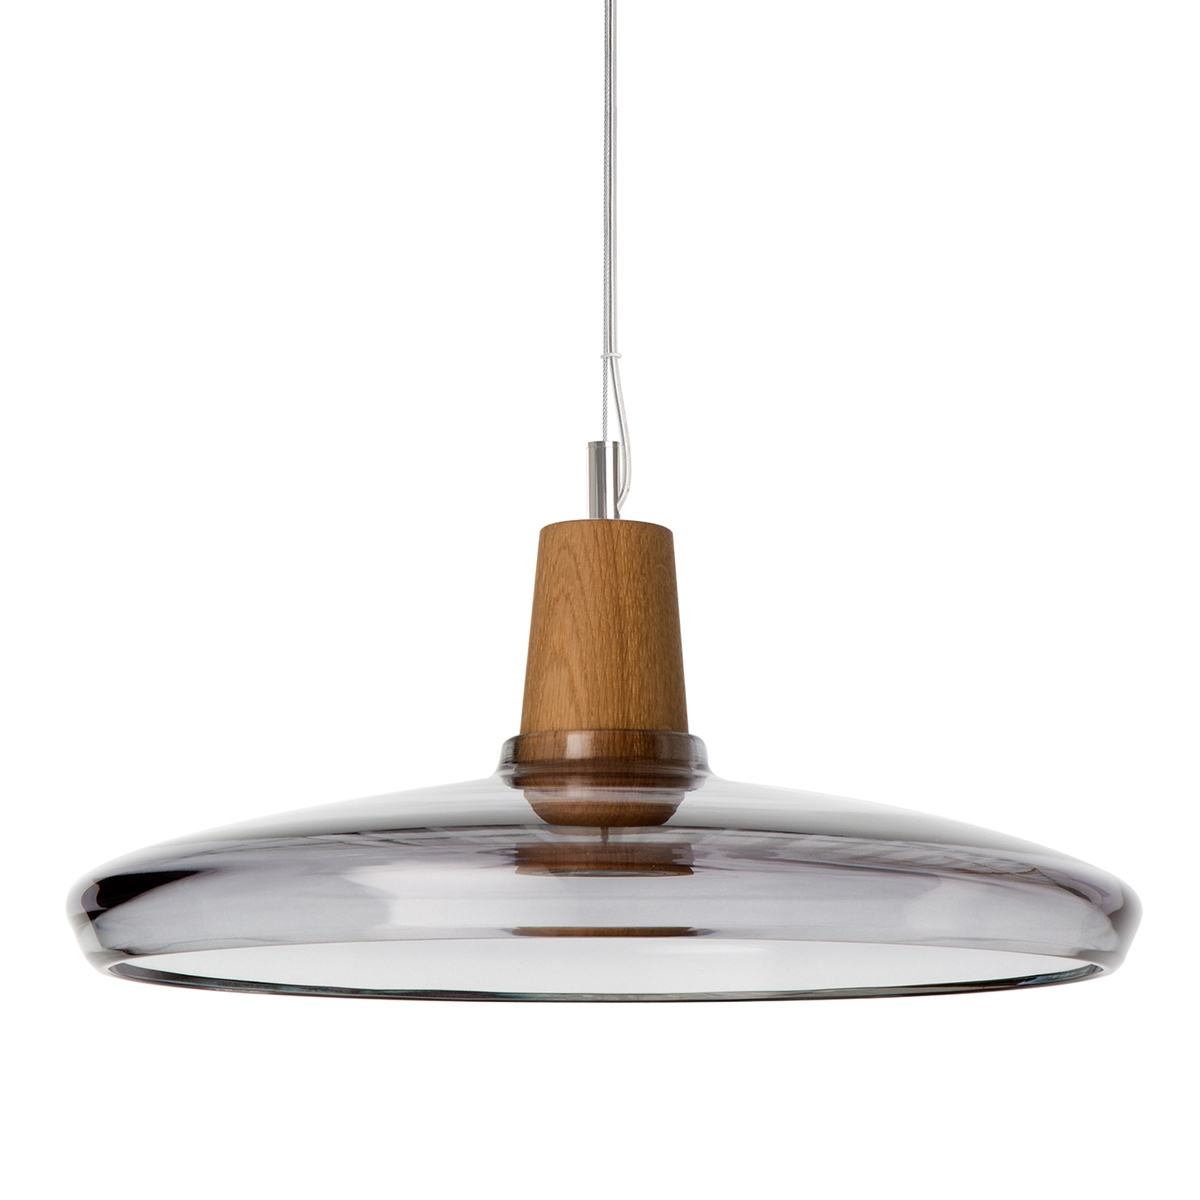 Suspension en bois et en verre soufflé au design industriel # Suspension Design Bois